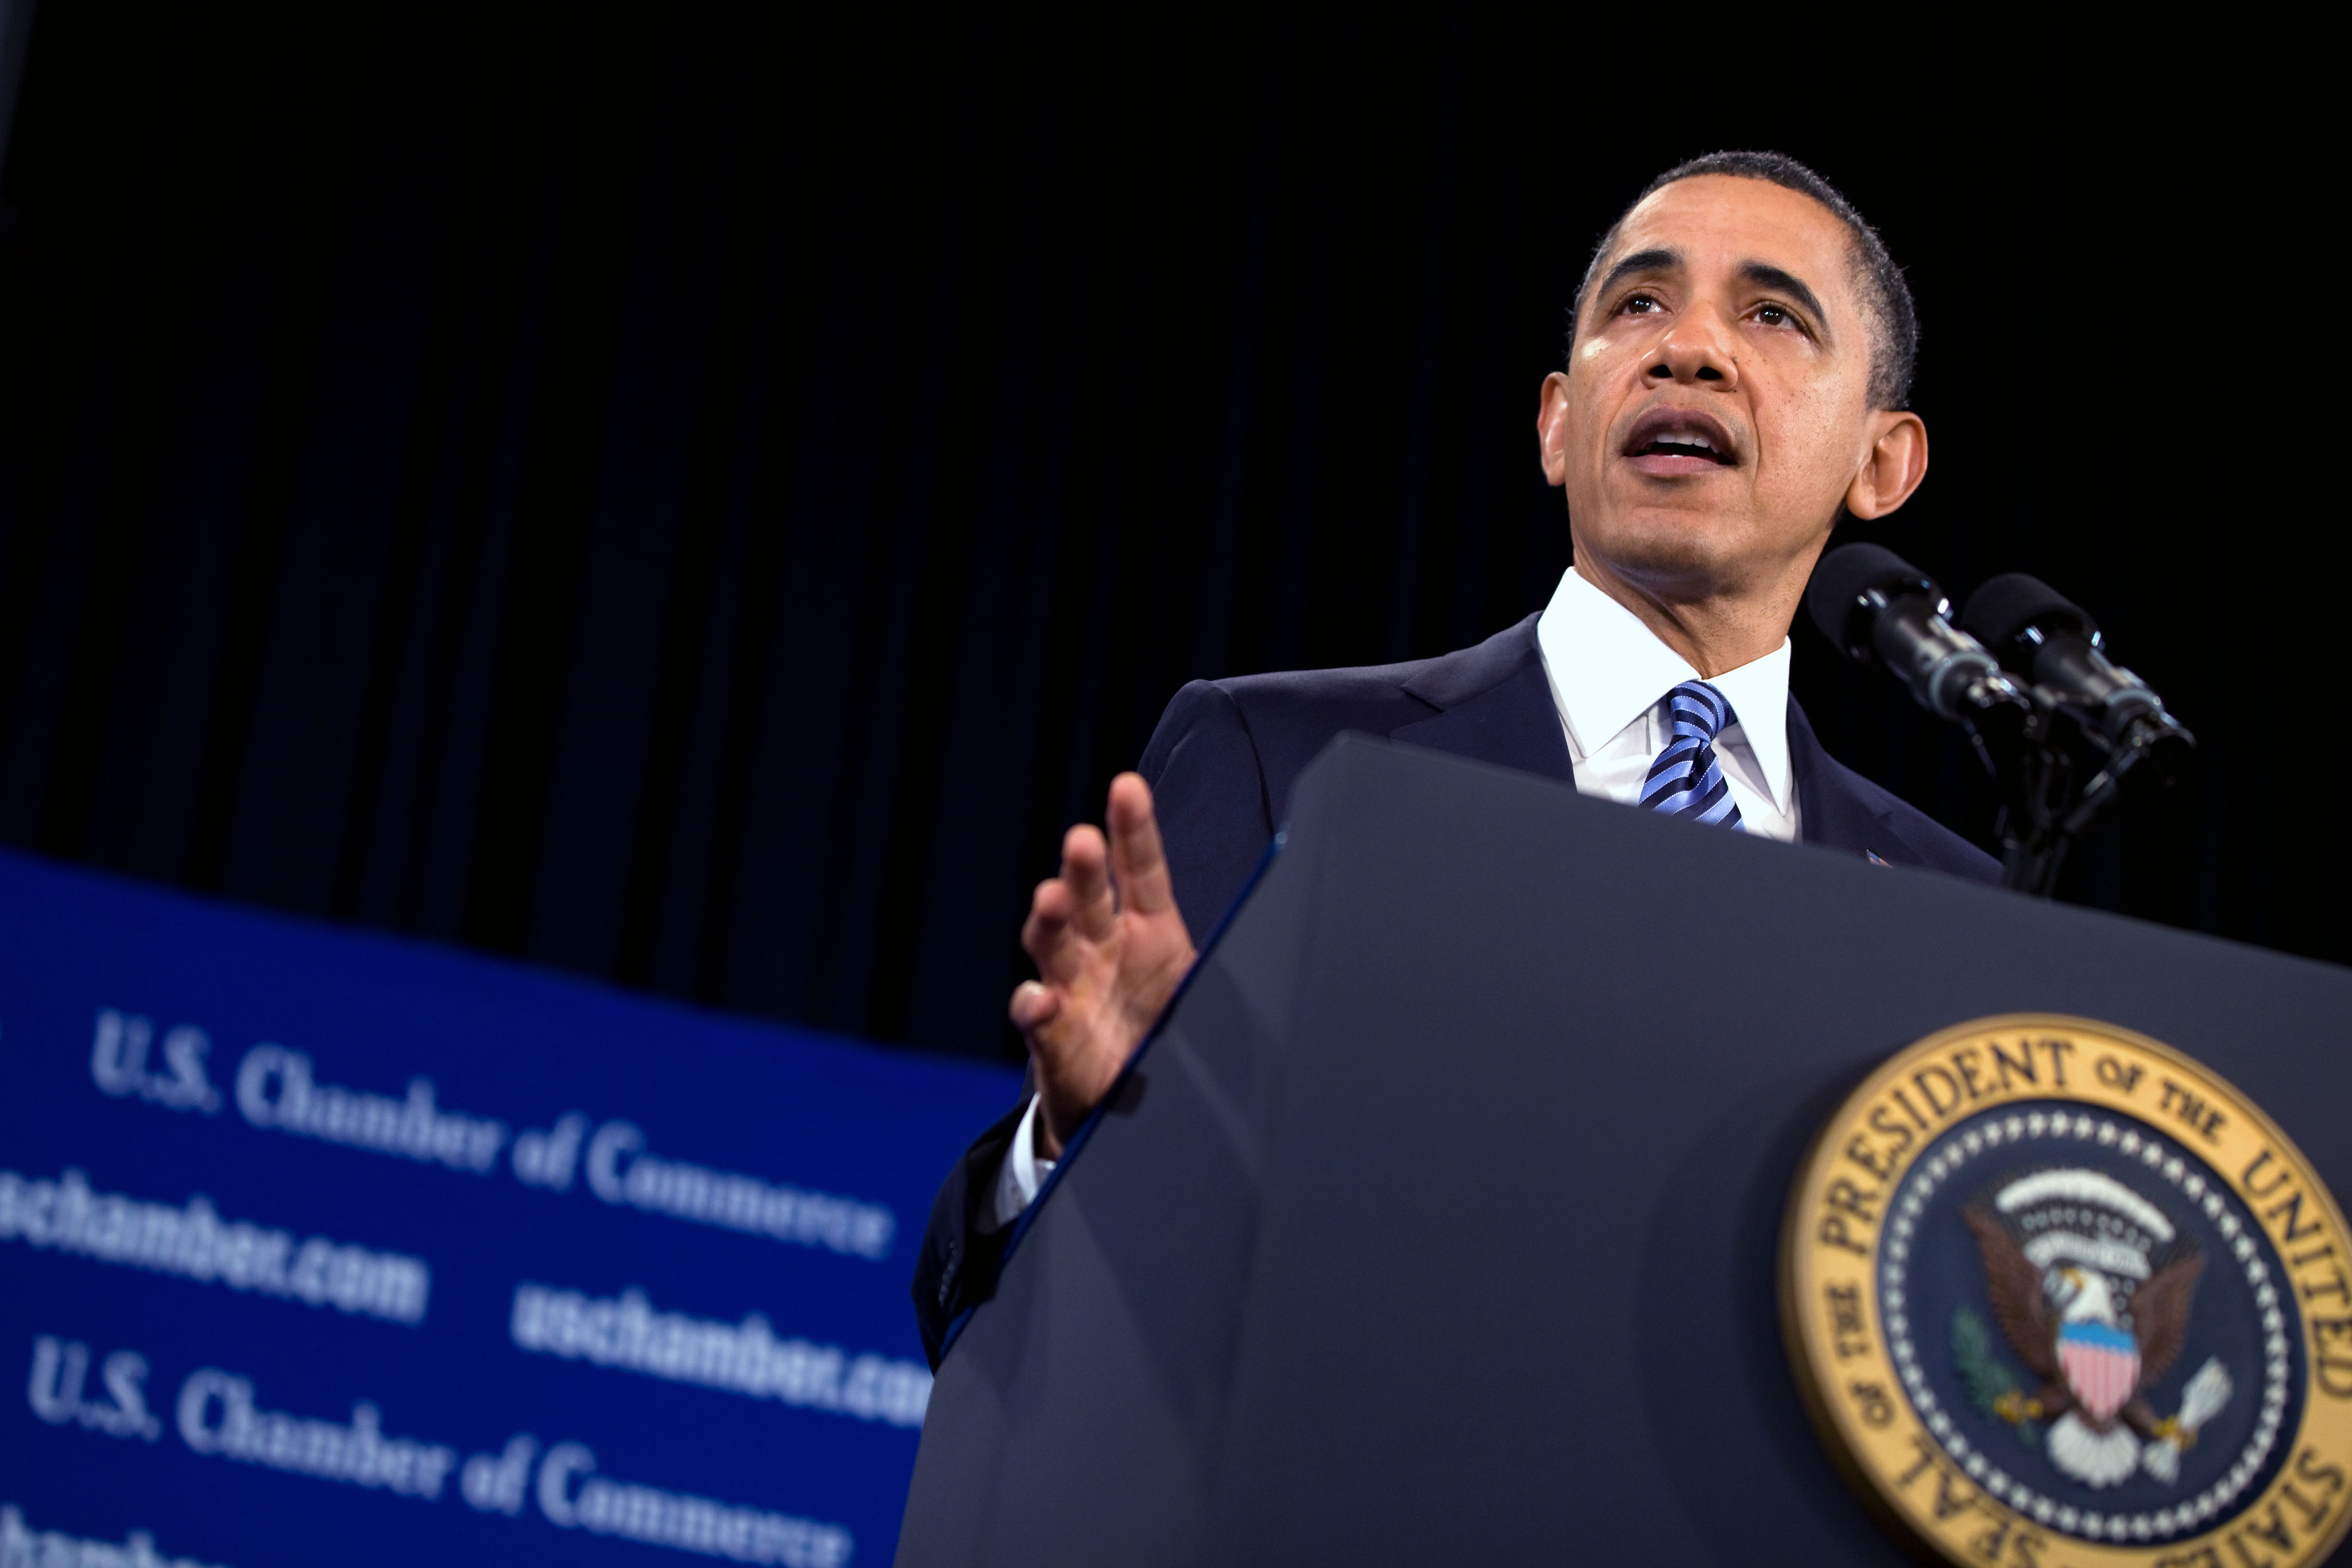 President Barack Obama Addresses the U.S. Chamber of Commerce